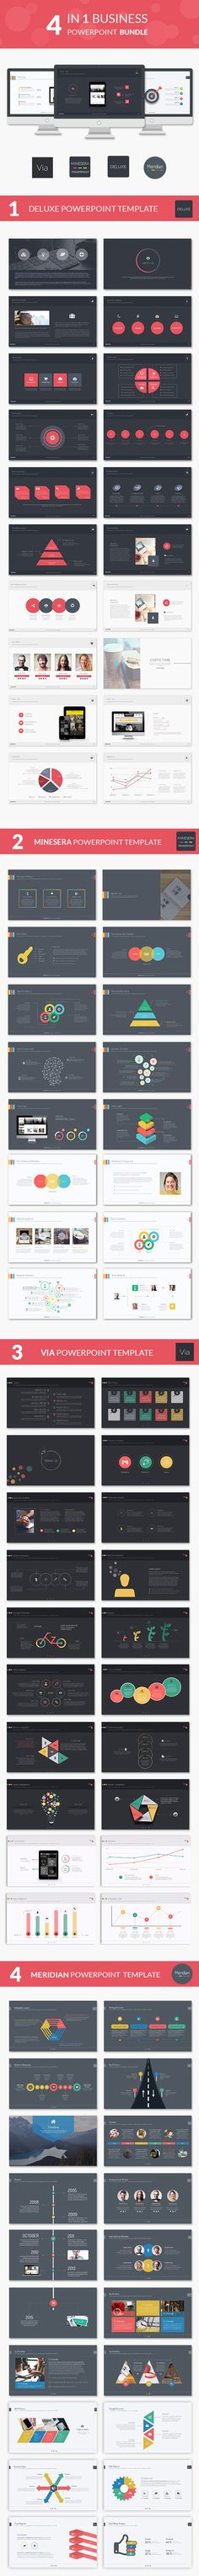 4 Business Powerpoint Bundle Template #powerpoint #powerpointtemplate Download: http://graphicriver.net/item/4-business-powerpoint-bundle/10459414?ref=ksioks